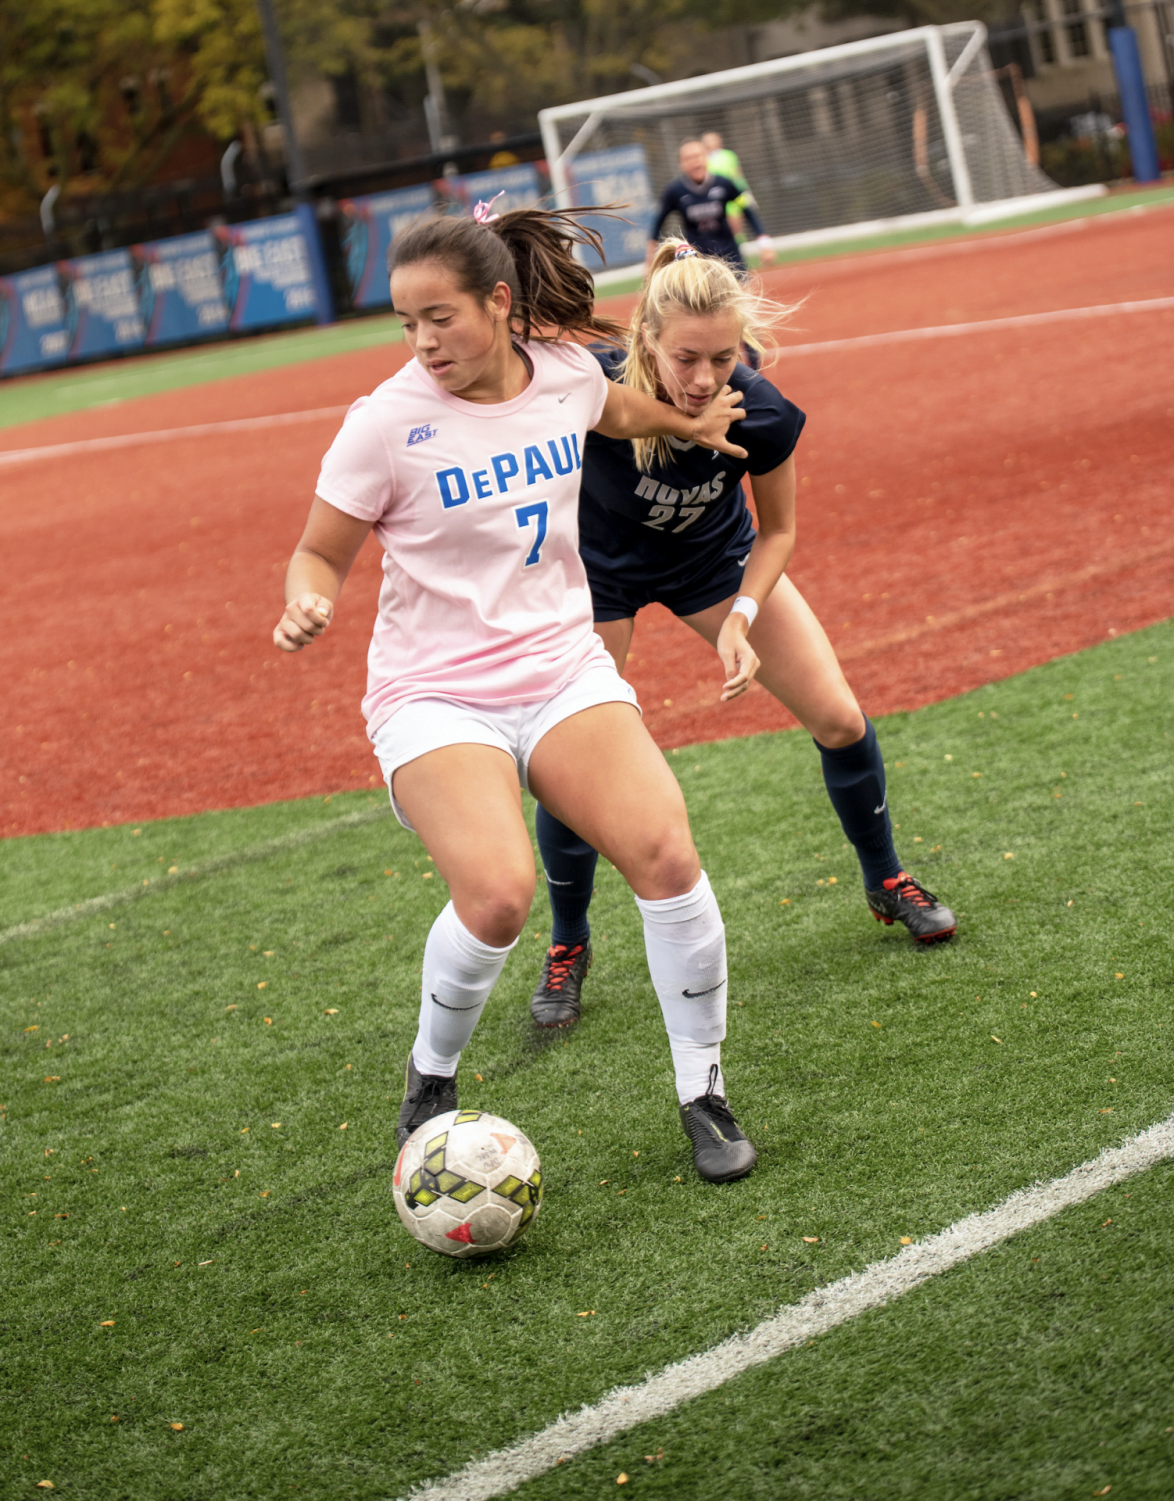 Kristin Boos defends the ball against a Georgetown defender in a game on Oct. 24 in a contest at Wish Field. Boos has three goals and three assists on the season.